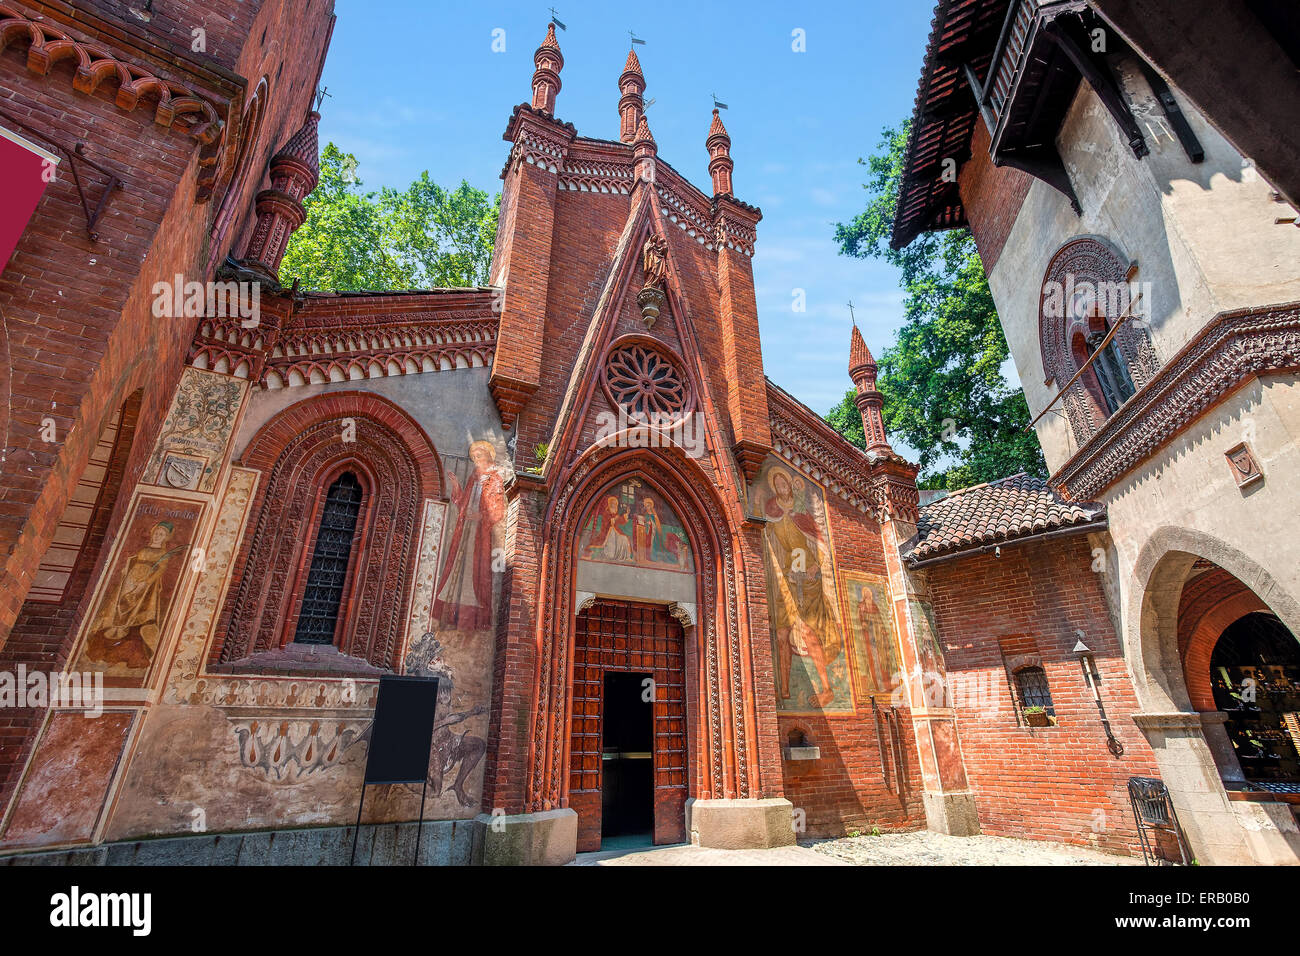 Small red brick church in Parco del Valentino in Turin, Northern Italy. - Stock Image